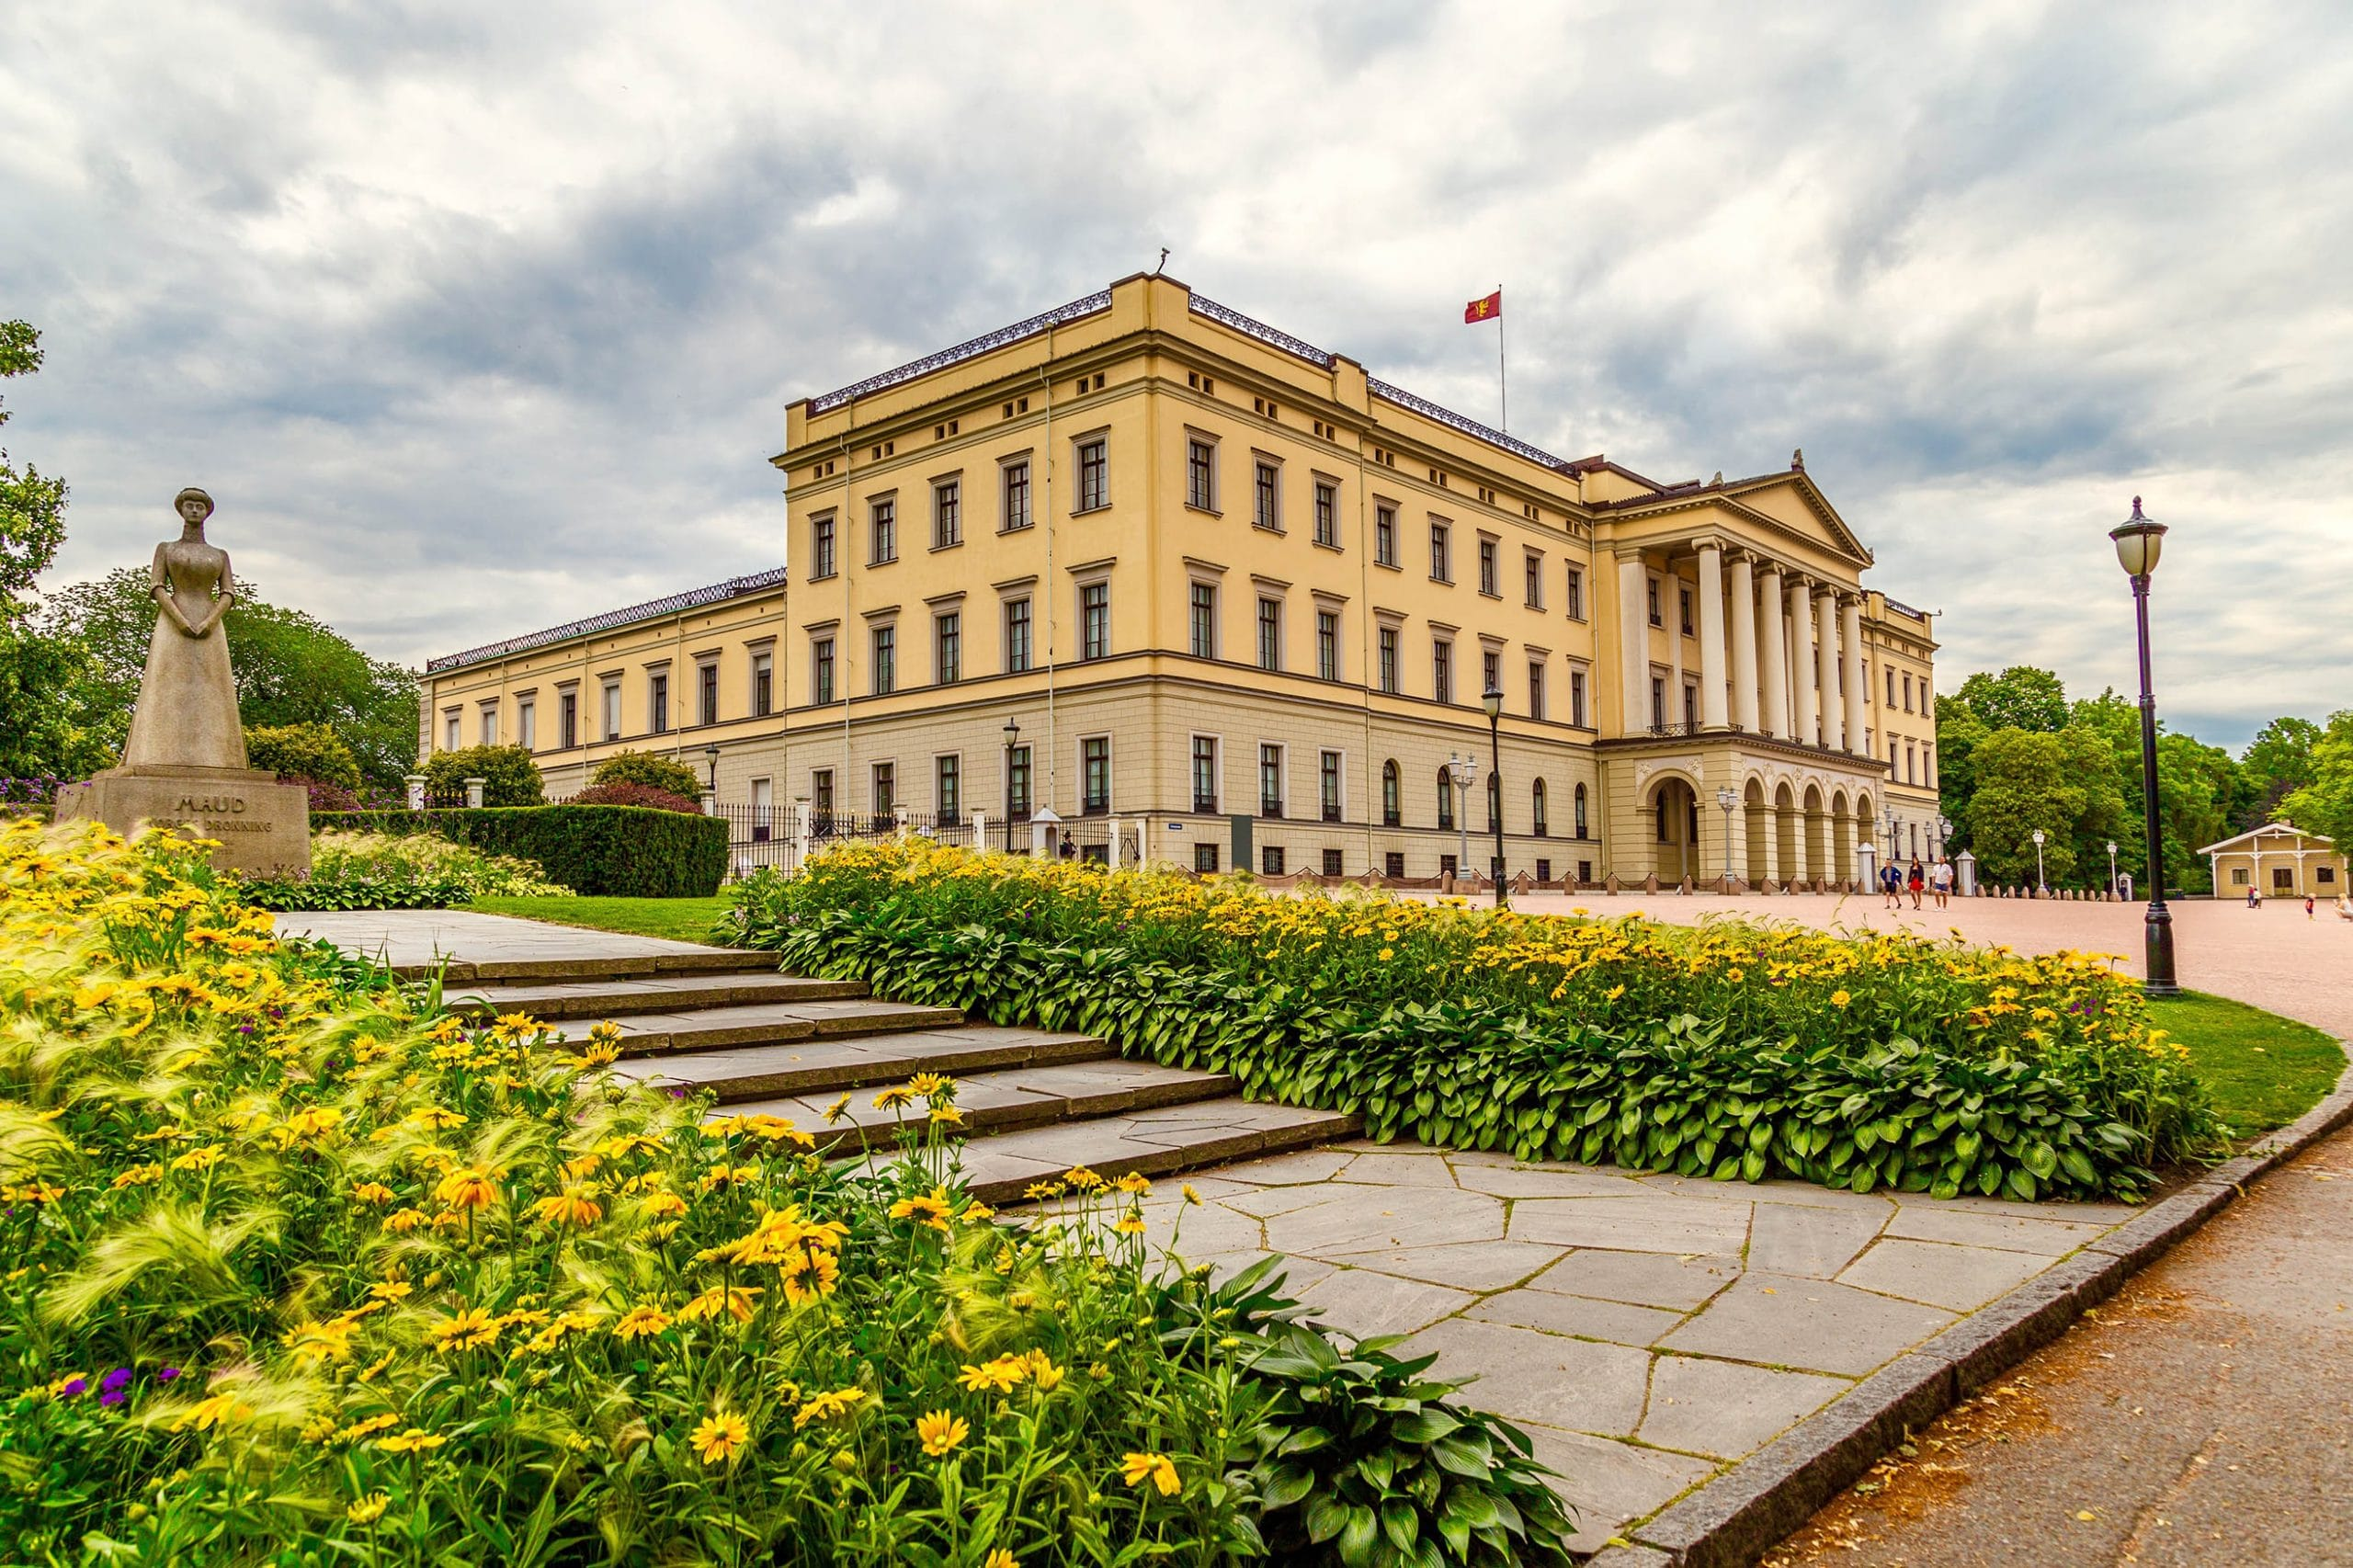 Oslo | is the capital city of Norway